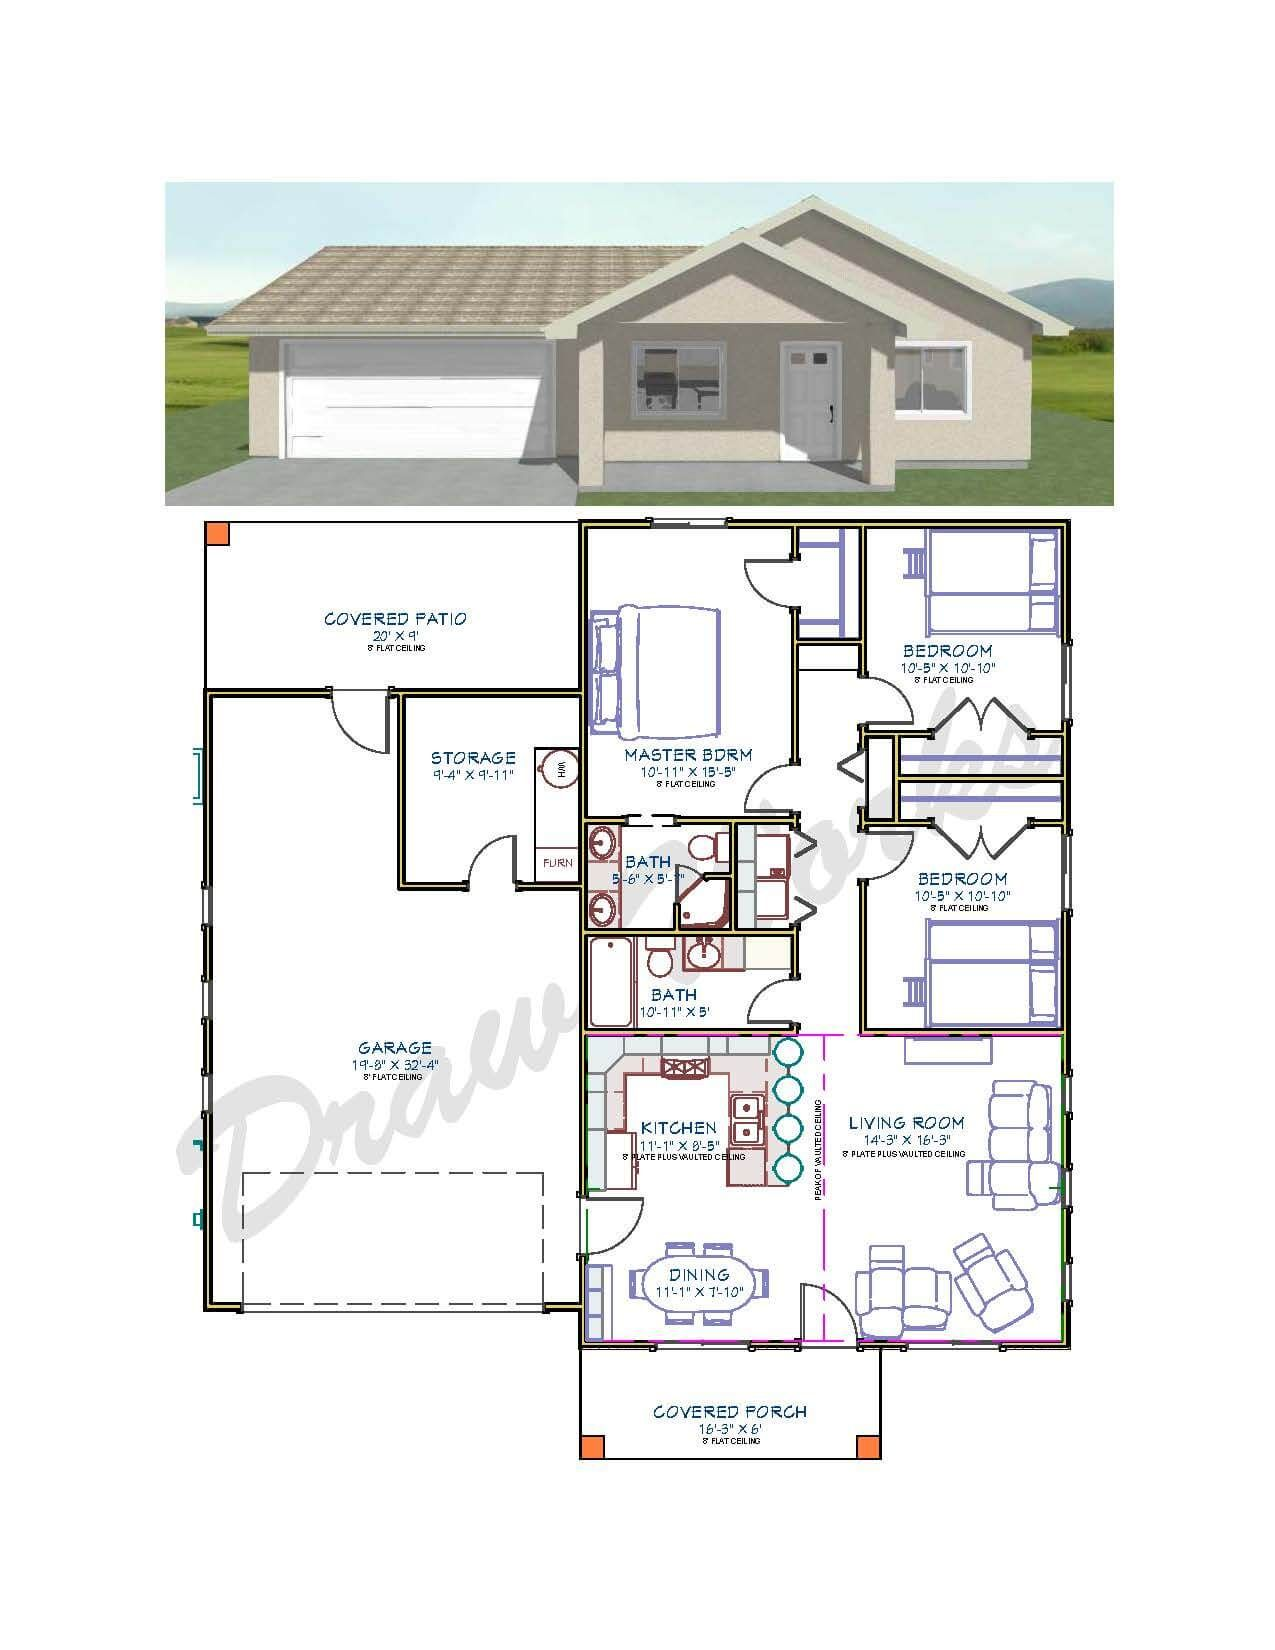 House Floor Plans Utah Draw Works Quality Home Design House Floor Plans Floor Plans House Flooring